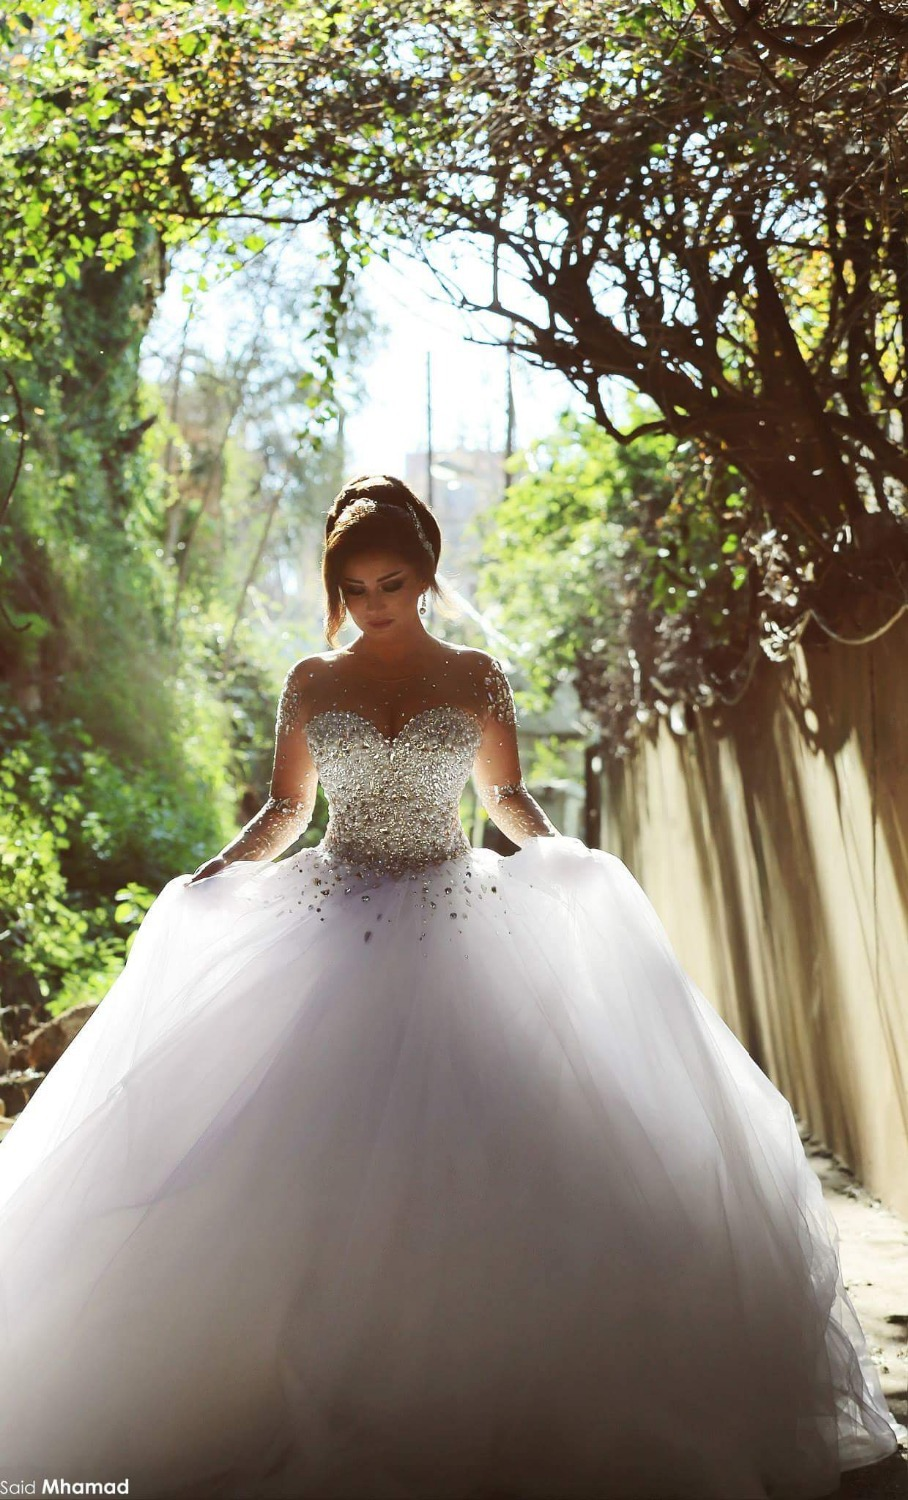 Ball Gown Wedding Dresses 2016 Elegant Wedding Gowns Crystal Beaded Sweetheart Long Sleeve Bridal Gowns Robe De Marige MW15